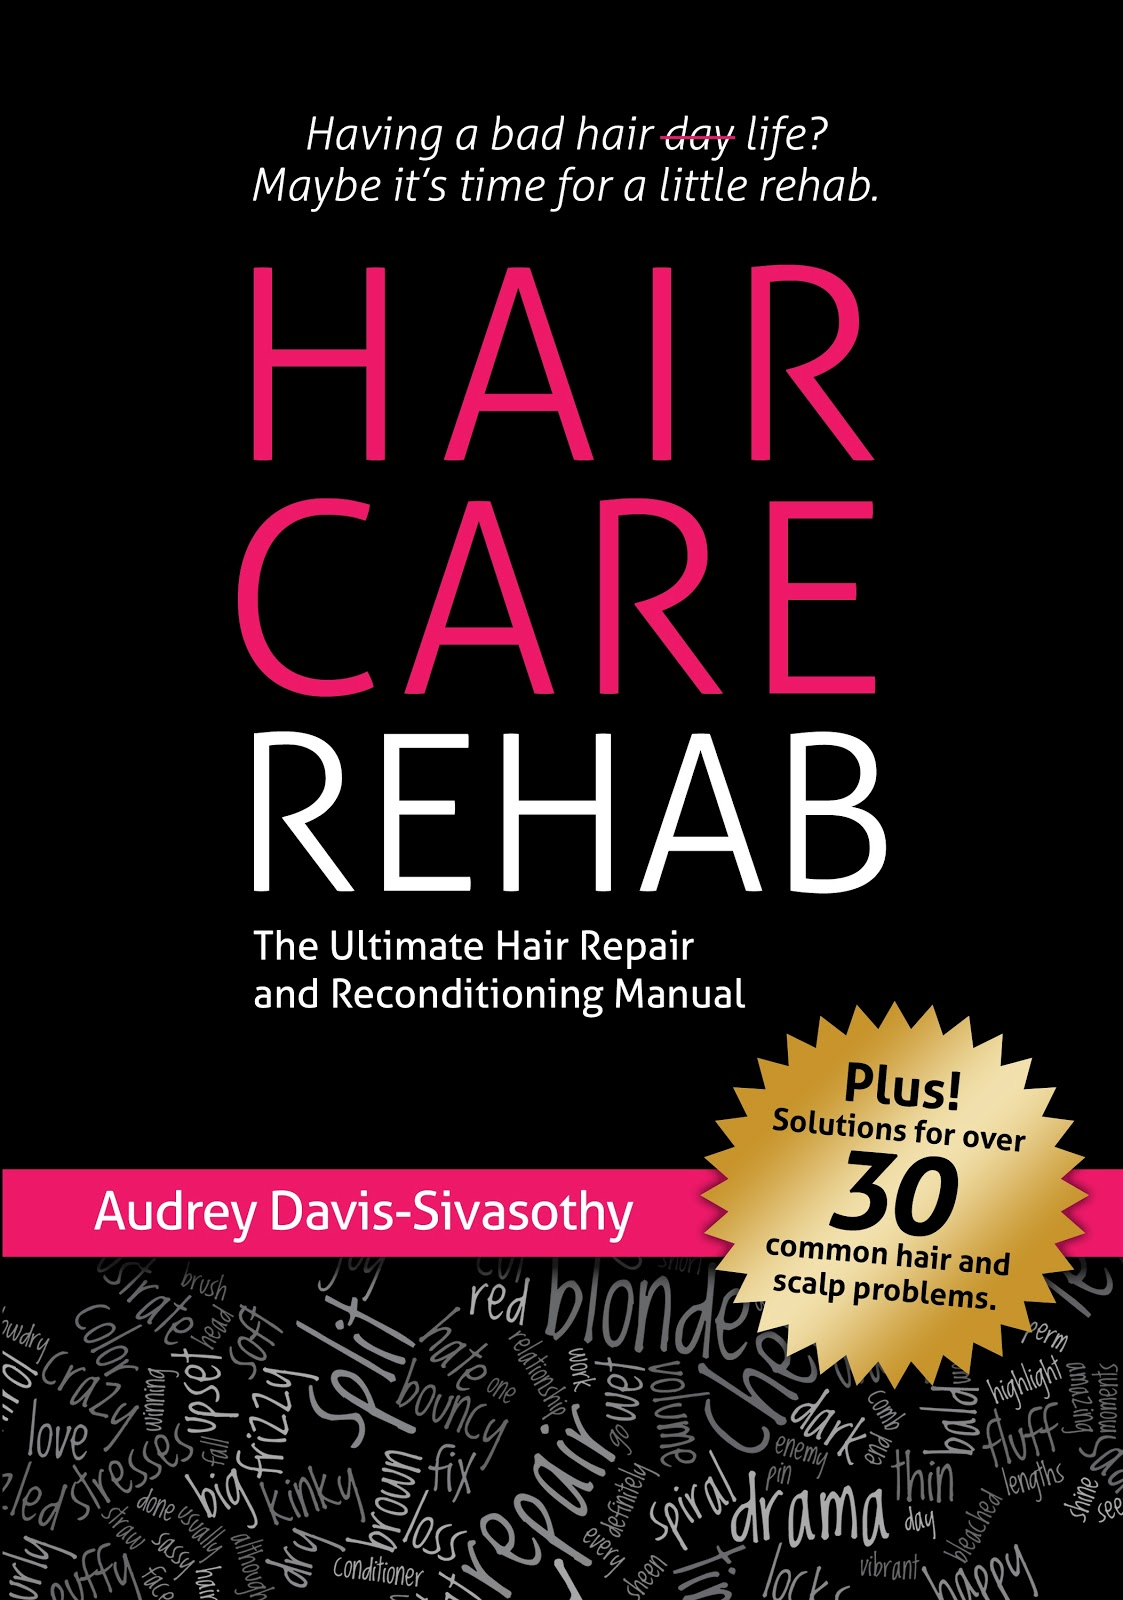 """A few months ago I started reading """"Hair Care Rehab: The Ultimate Hair  Repair & Reconditioning Manual"""" written by Audrey Davis-Sivasothy and got  sidetracked ..."""